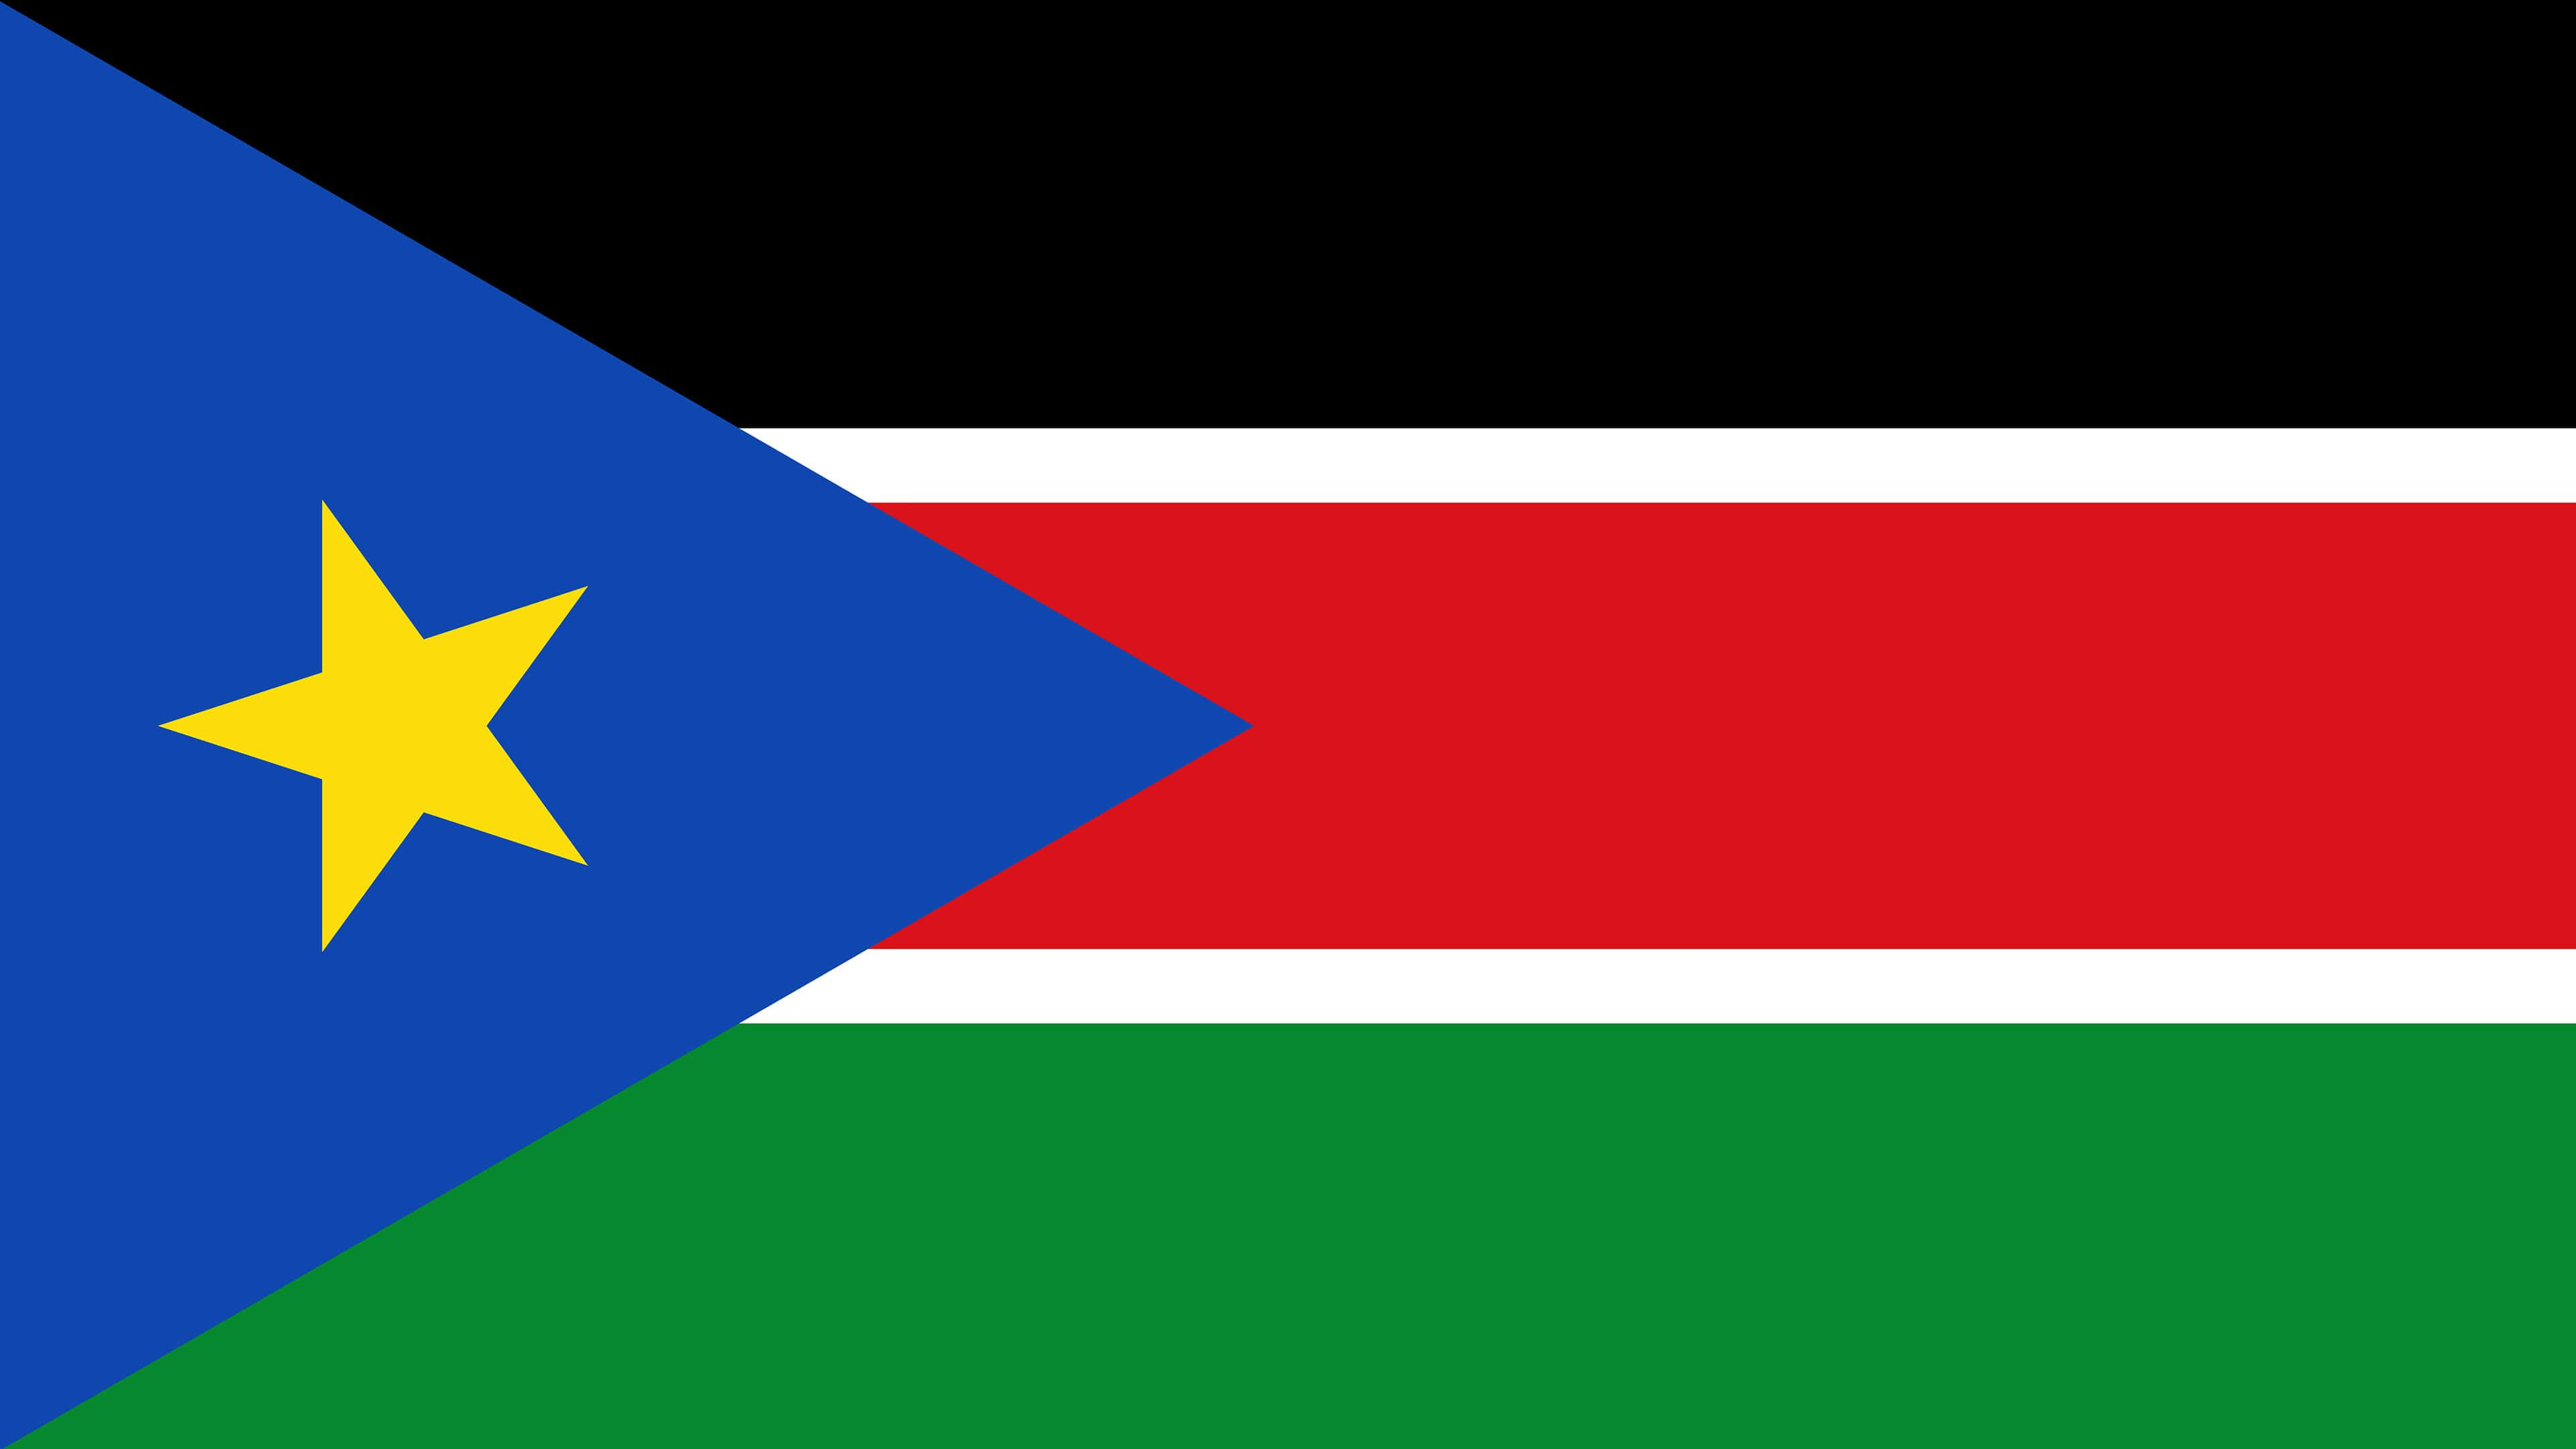 South Sudan Flag UHD 4K Wallpaper | Pixelz